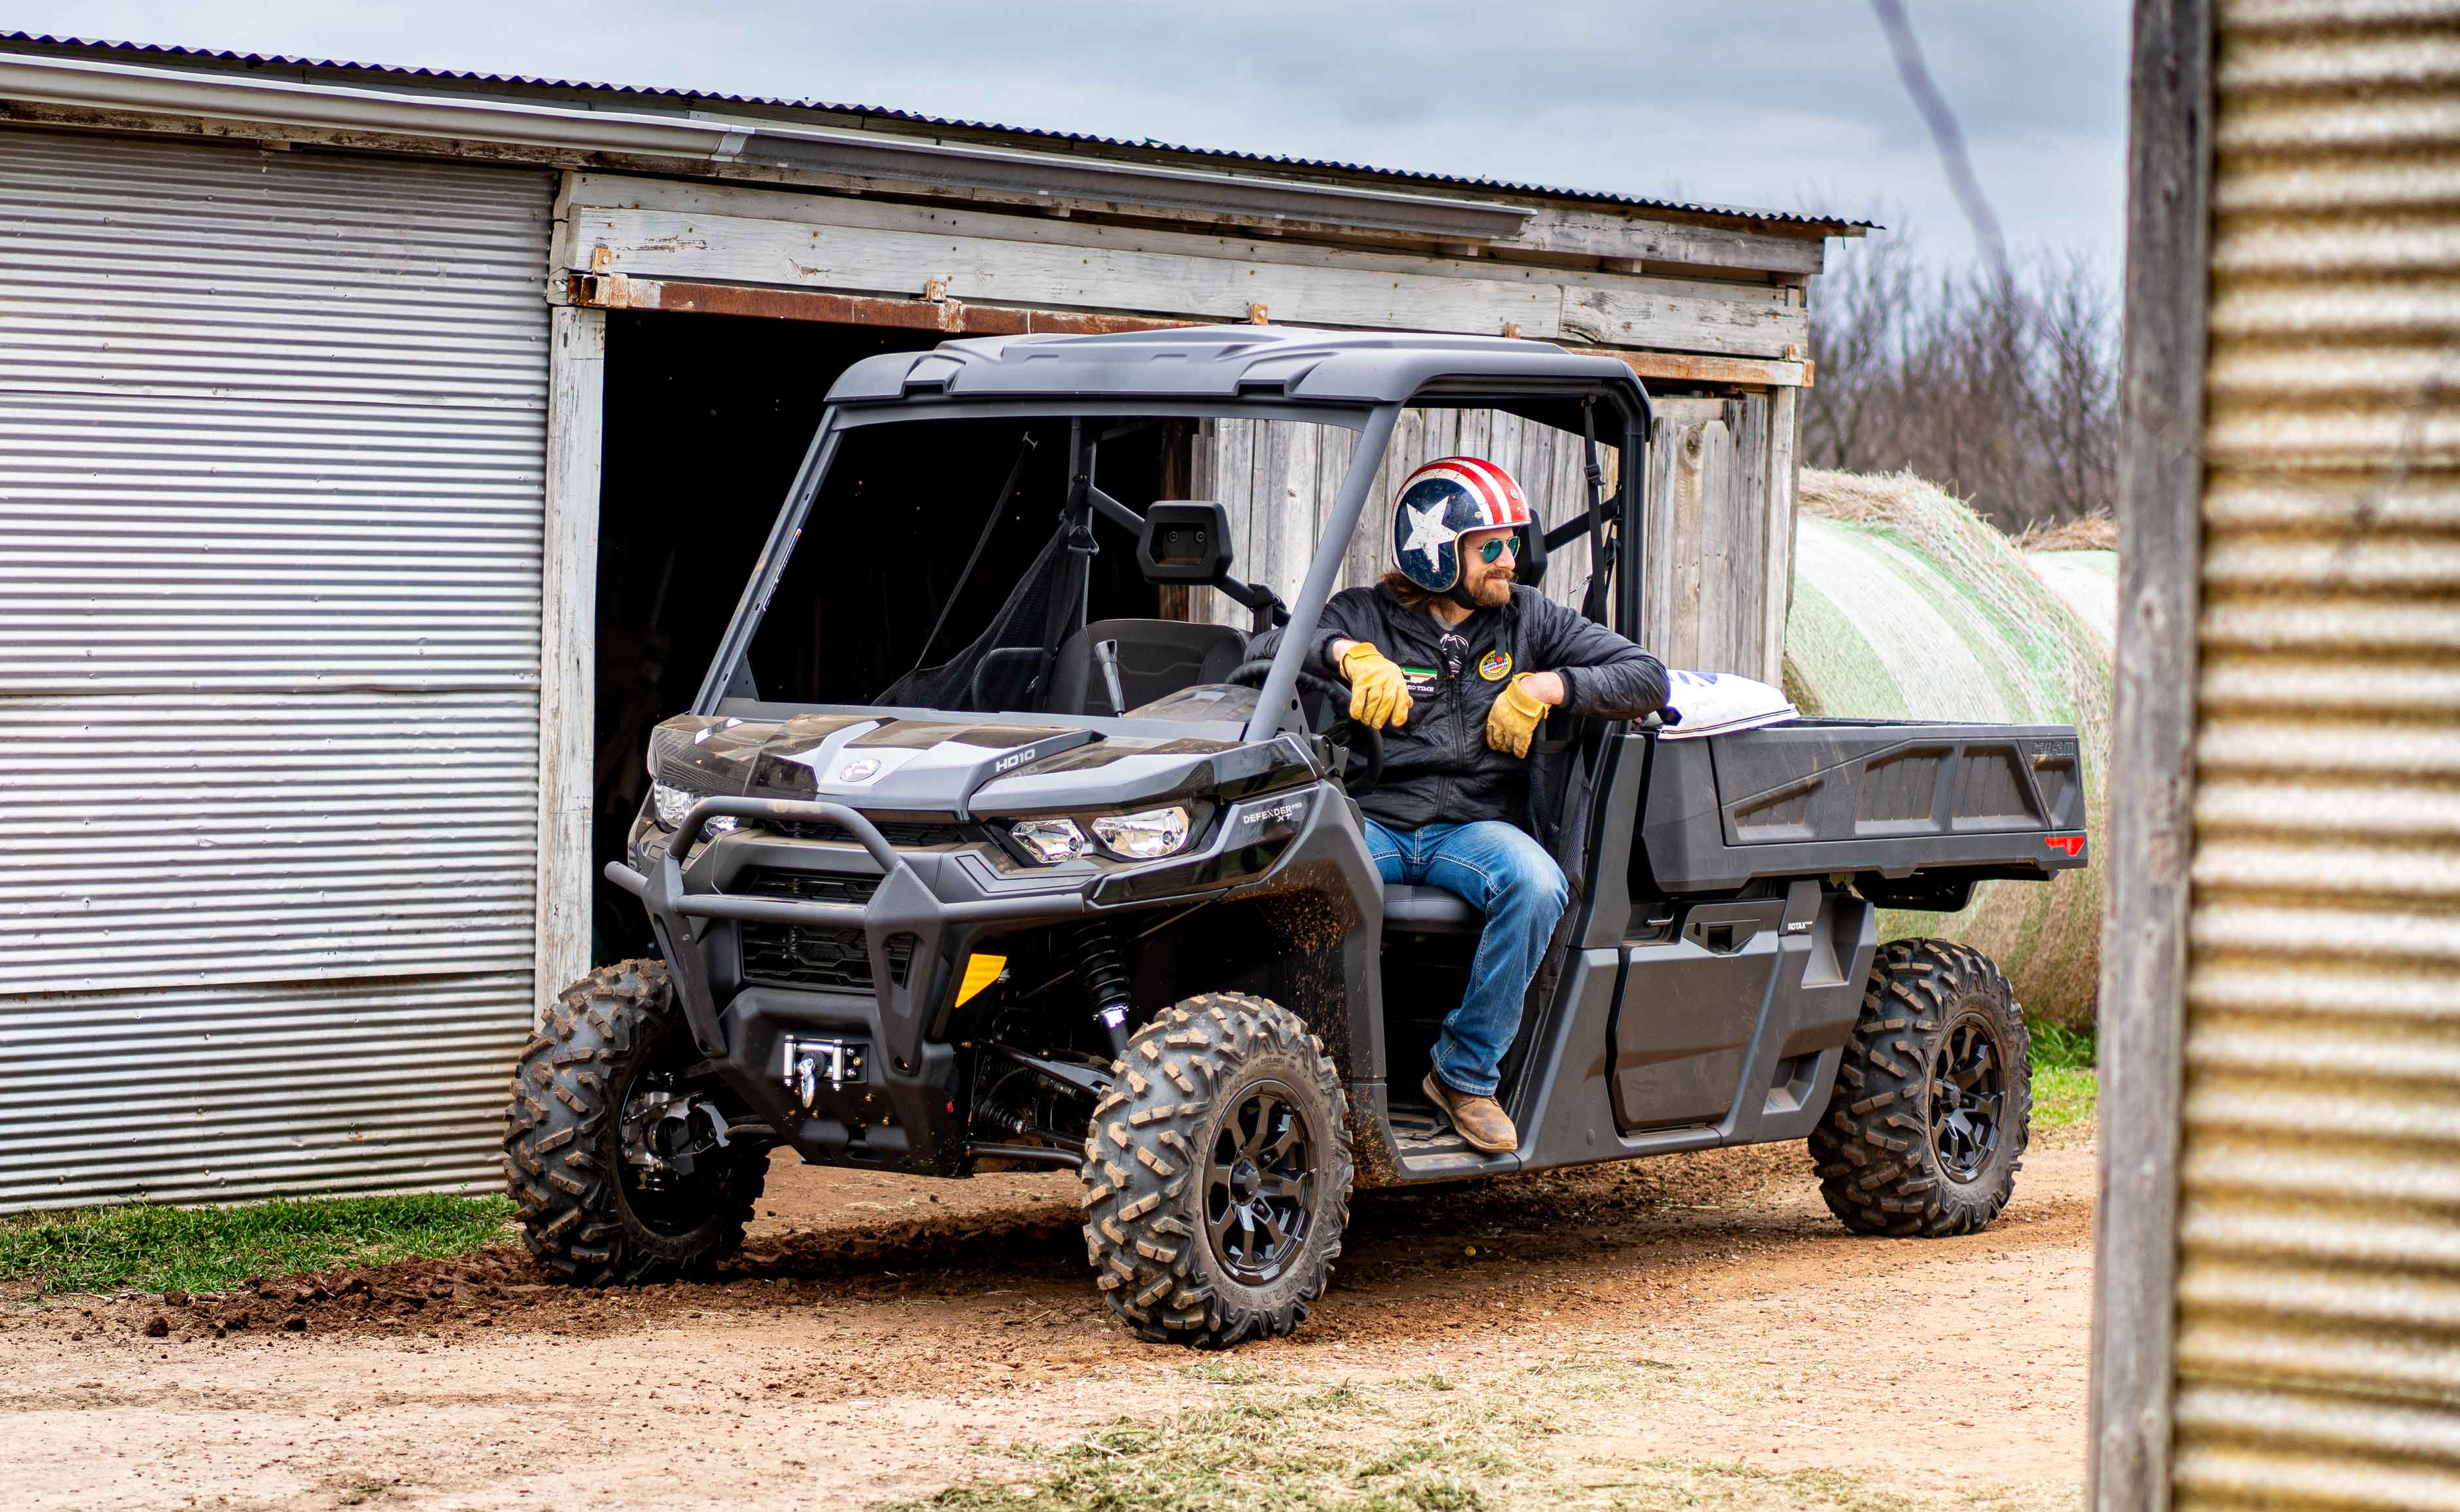 Can-Am Defender side-by-side vehicle local price